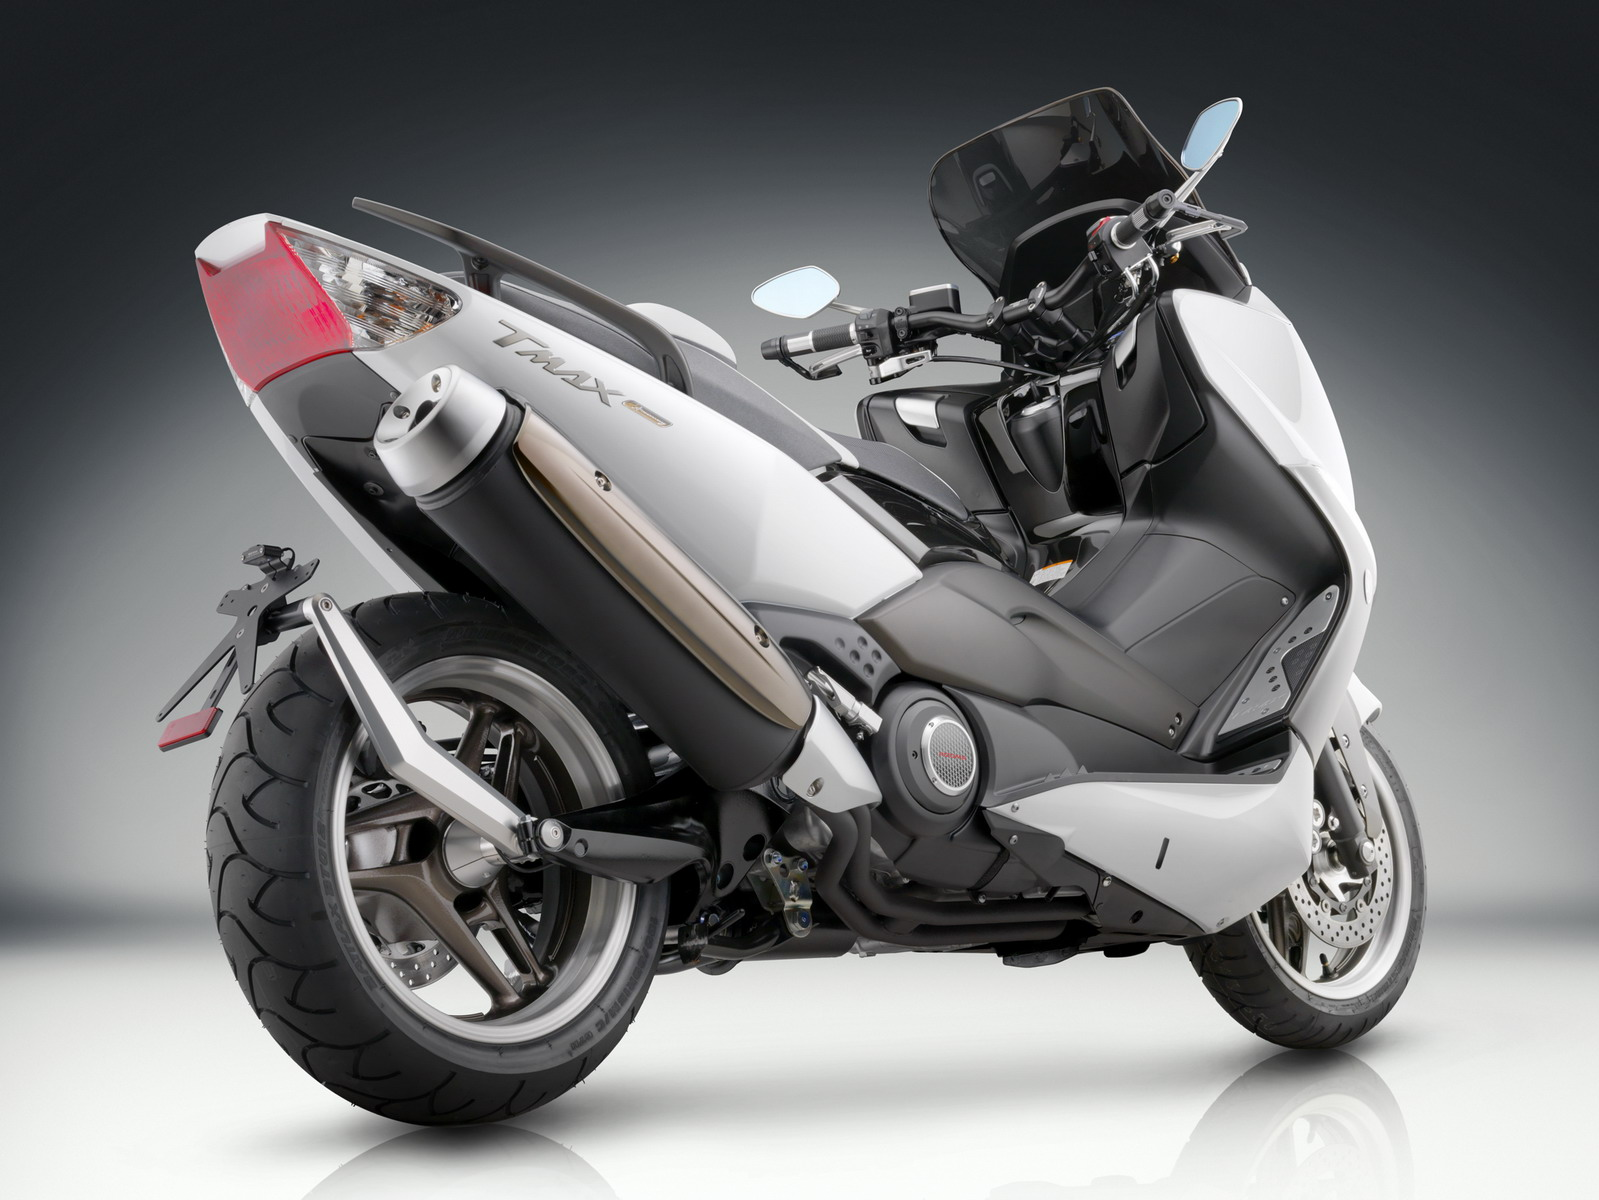 yamaha yamaha tmax 500 moto zombdrive com. Black Bedroom Furniture Sets. Home Design Ideas